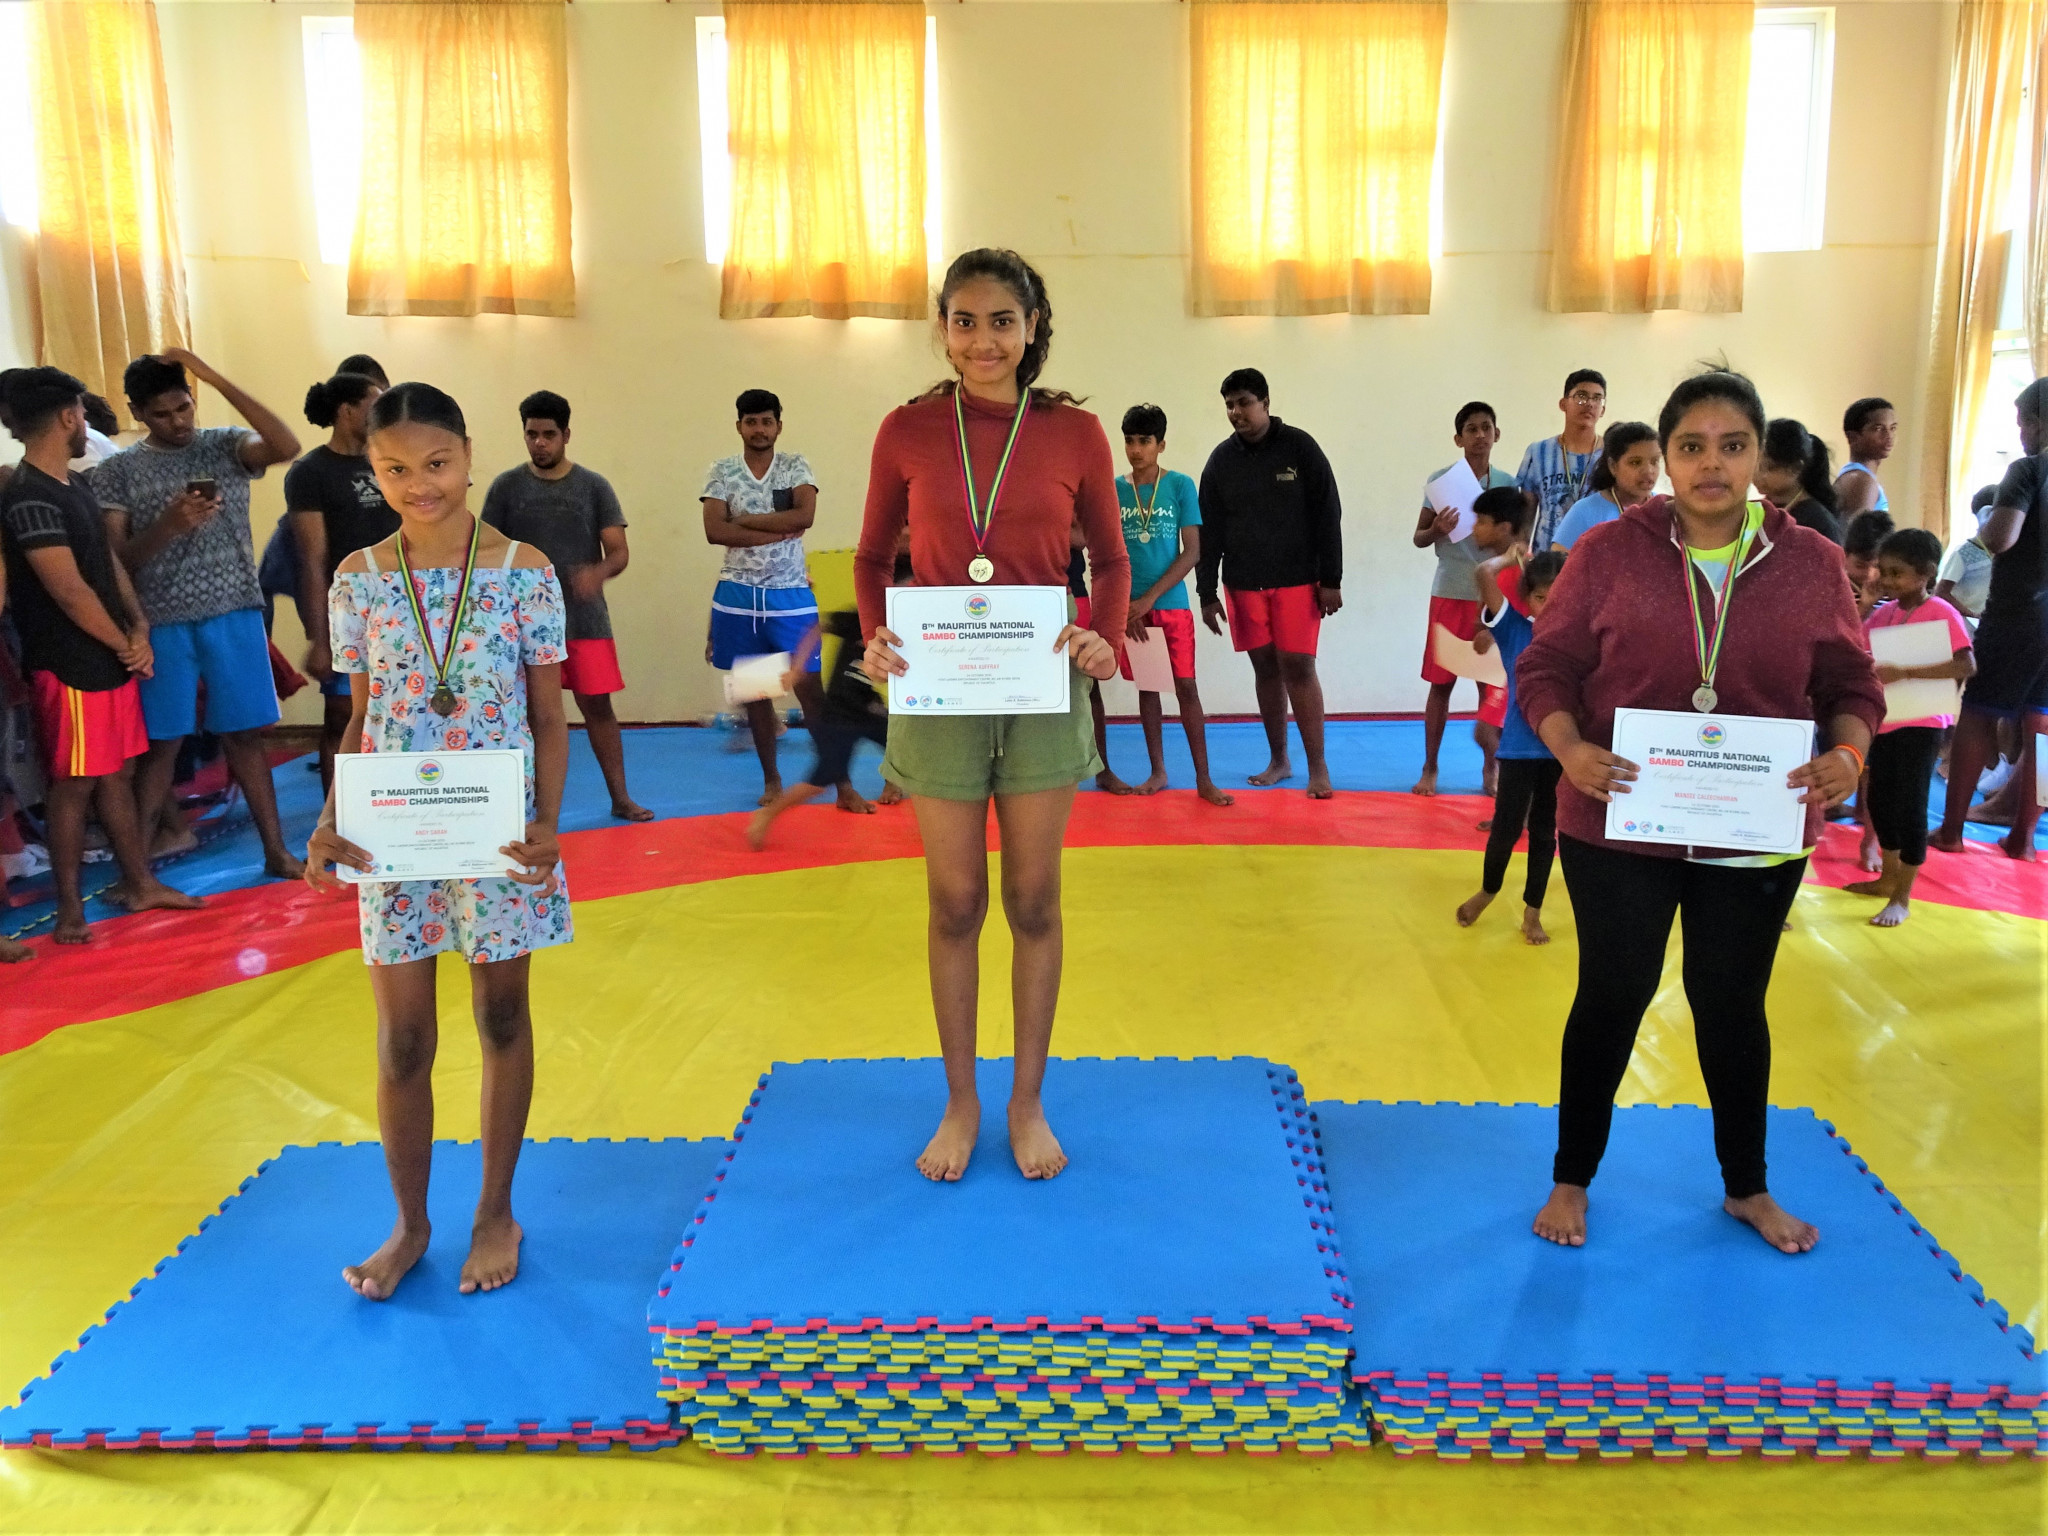 Mauritius Sambo Federation President Parsad Balkissoon said the increase in the number of girls participating in sambo was particularly pleasing ©Mauritius Sambo Federation